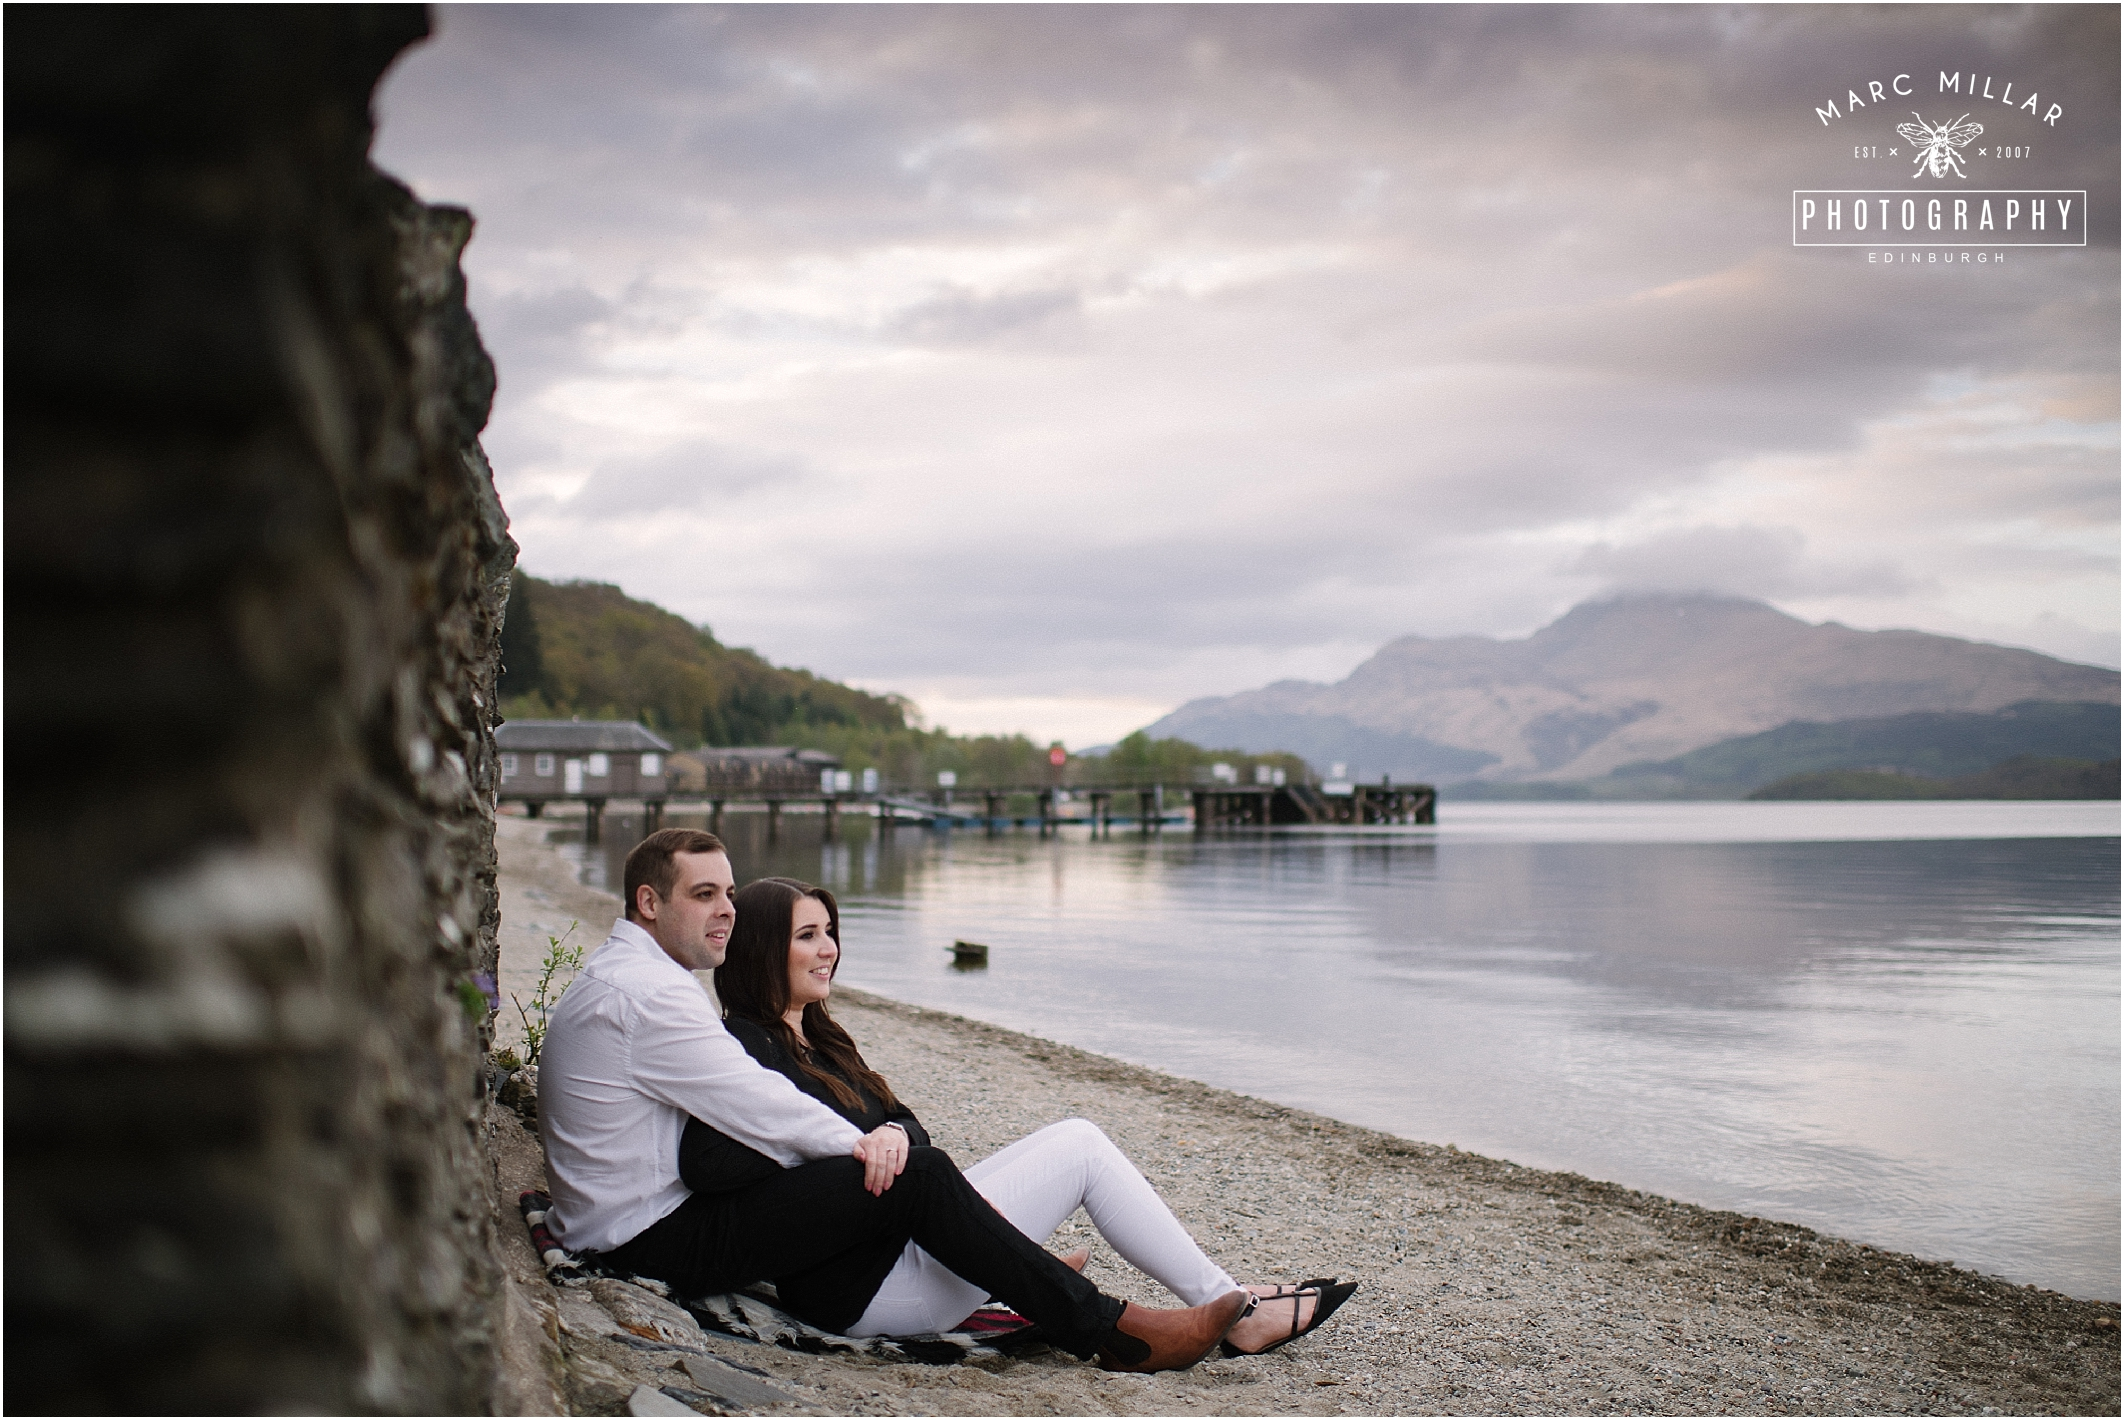 Pre Wedding shoot by Marc Millar Photography